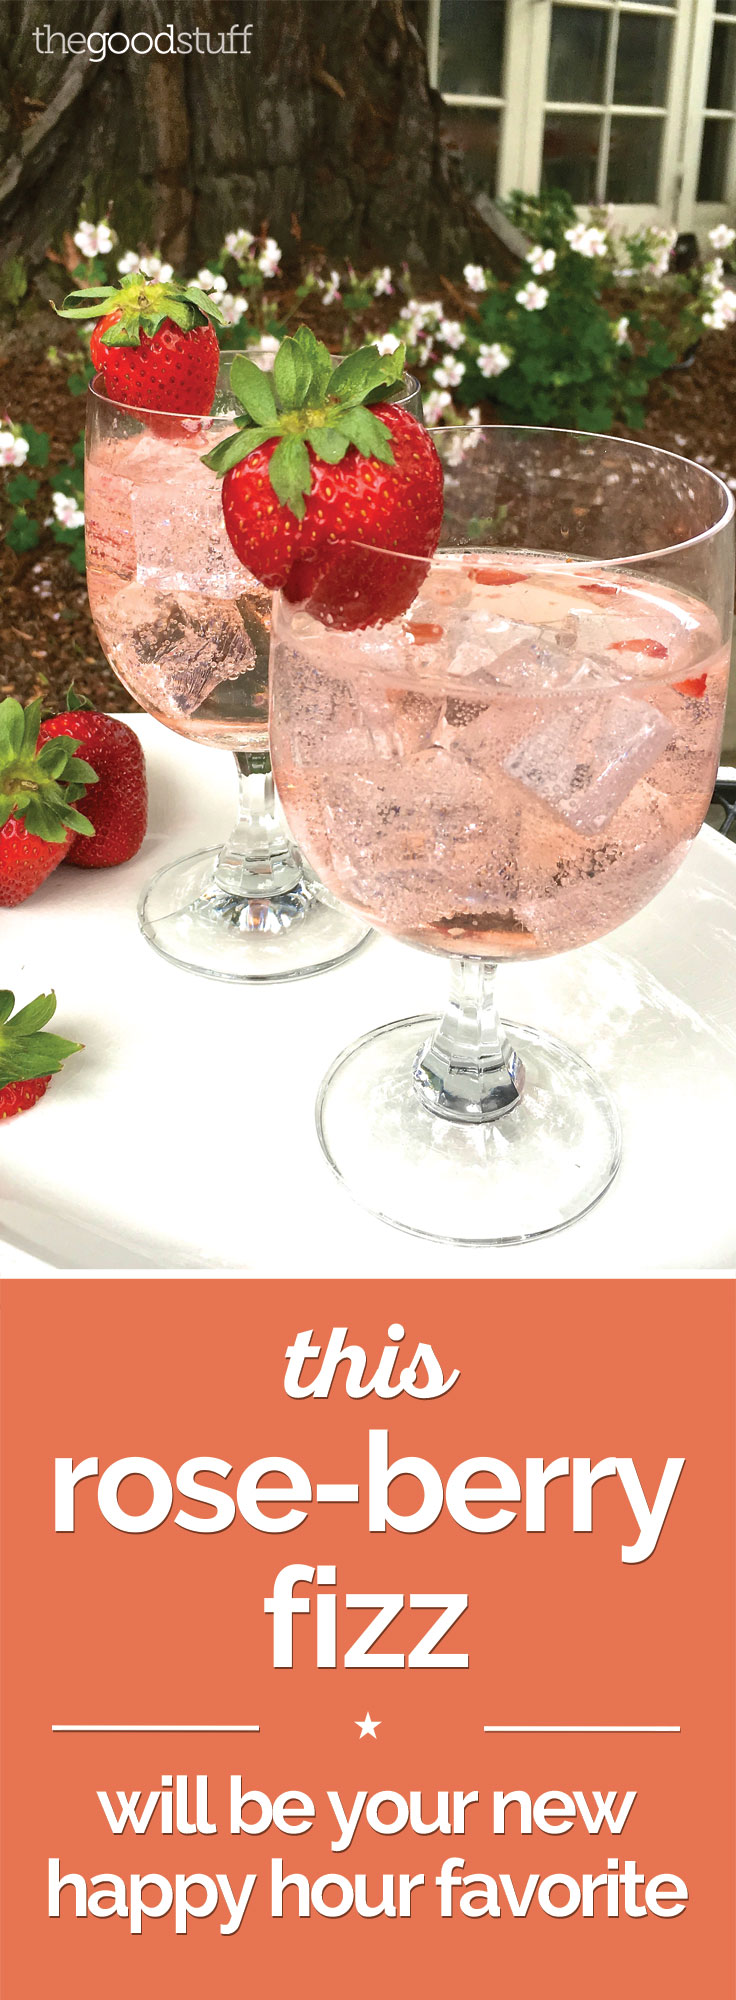 This Rose-Berry Fizz Will Be Your New Happy Hour Favorite | Coupons.com